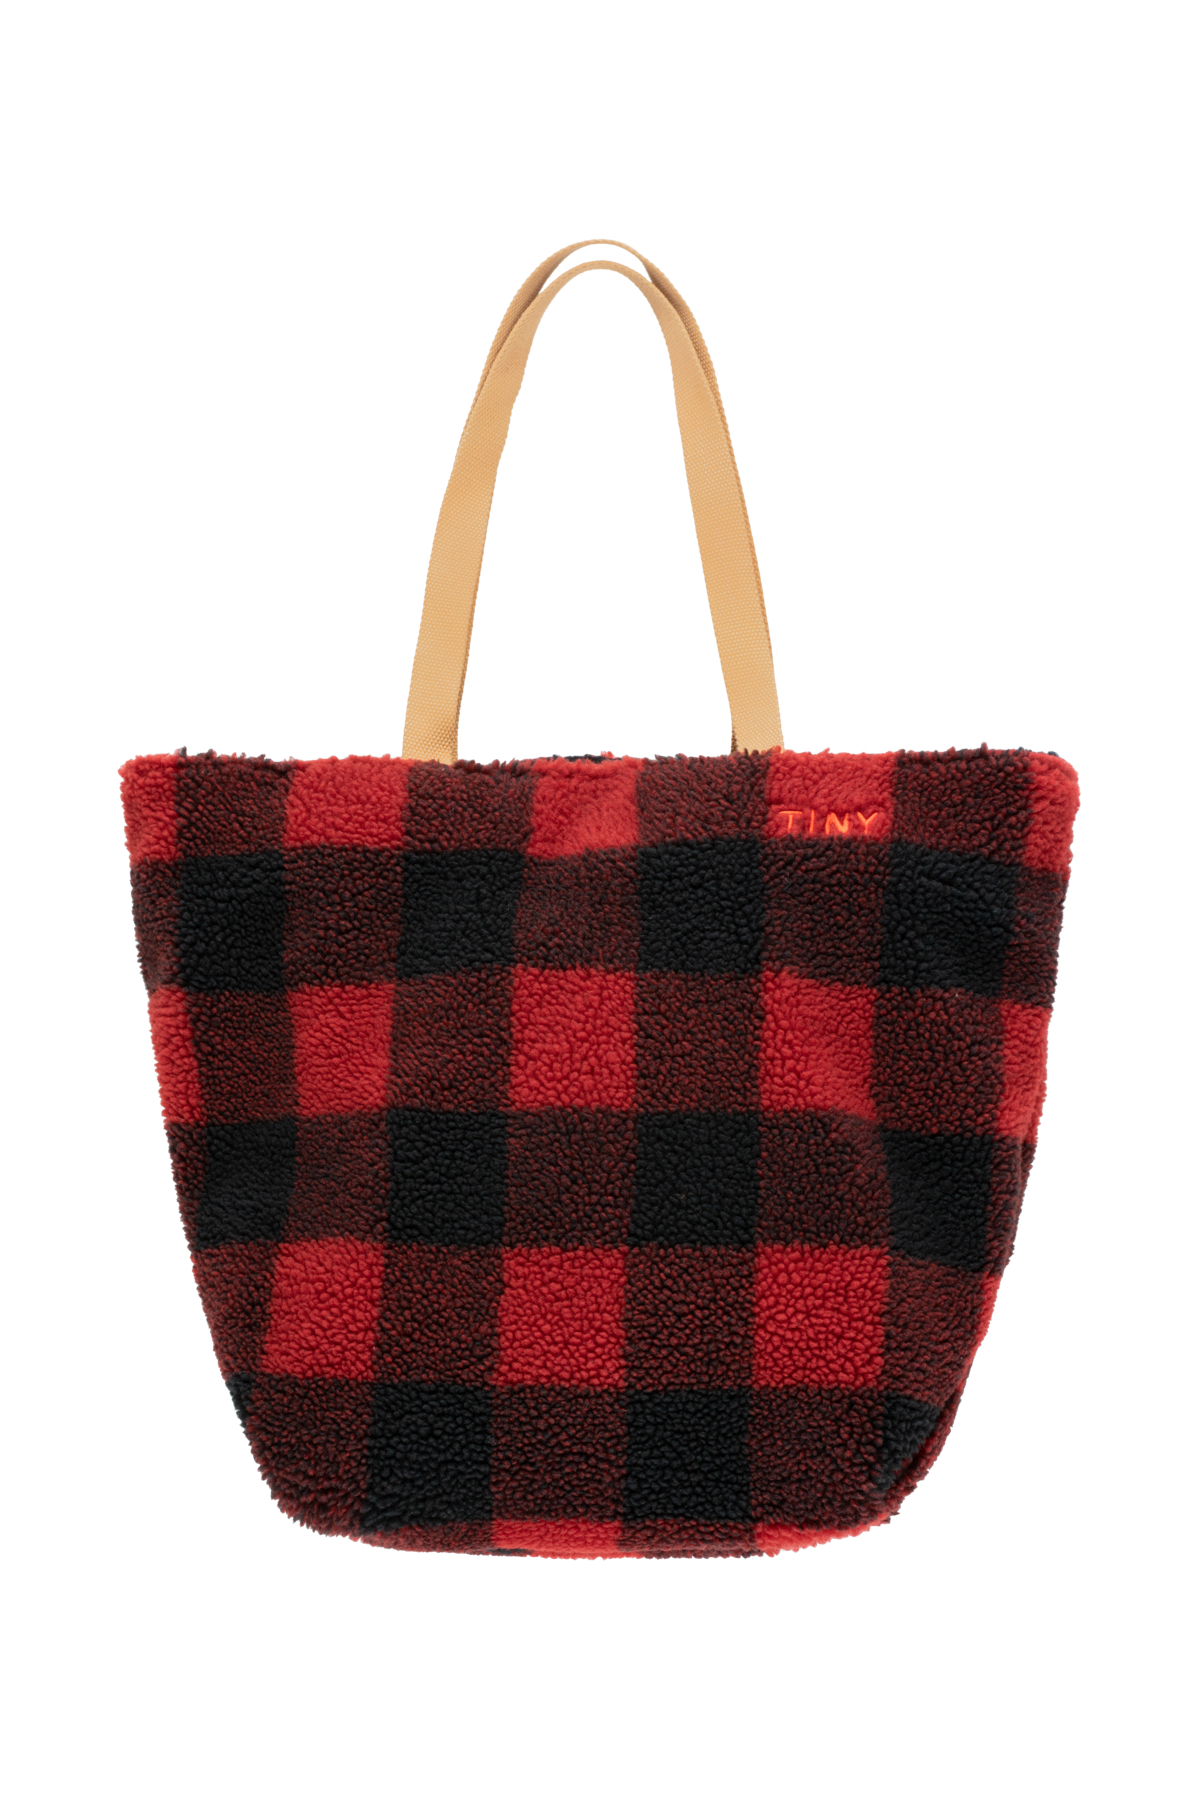 tinycottons check sherpa tote bag burgandy navy